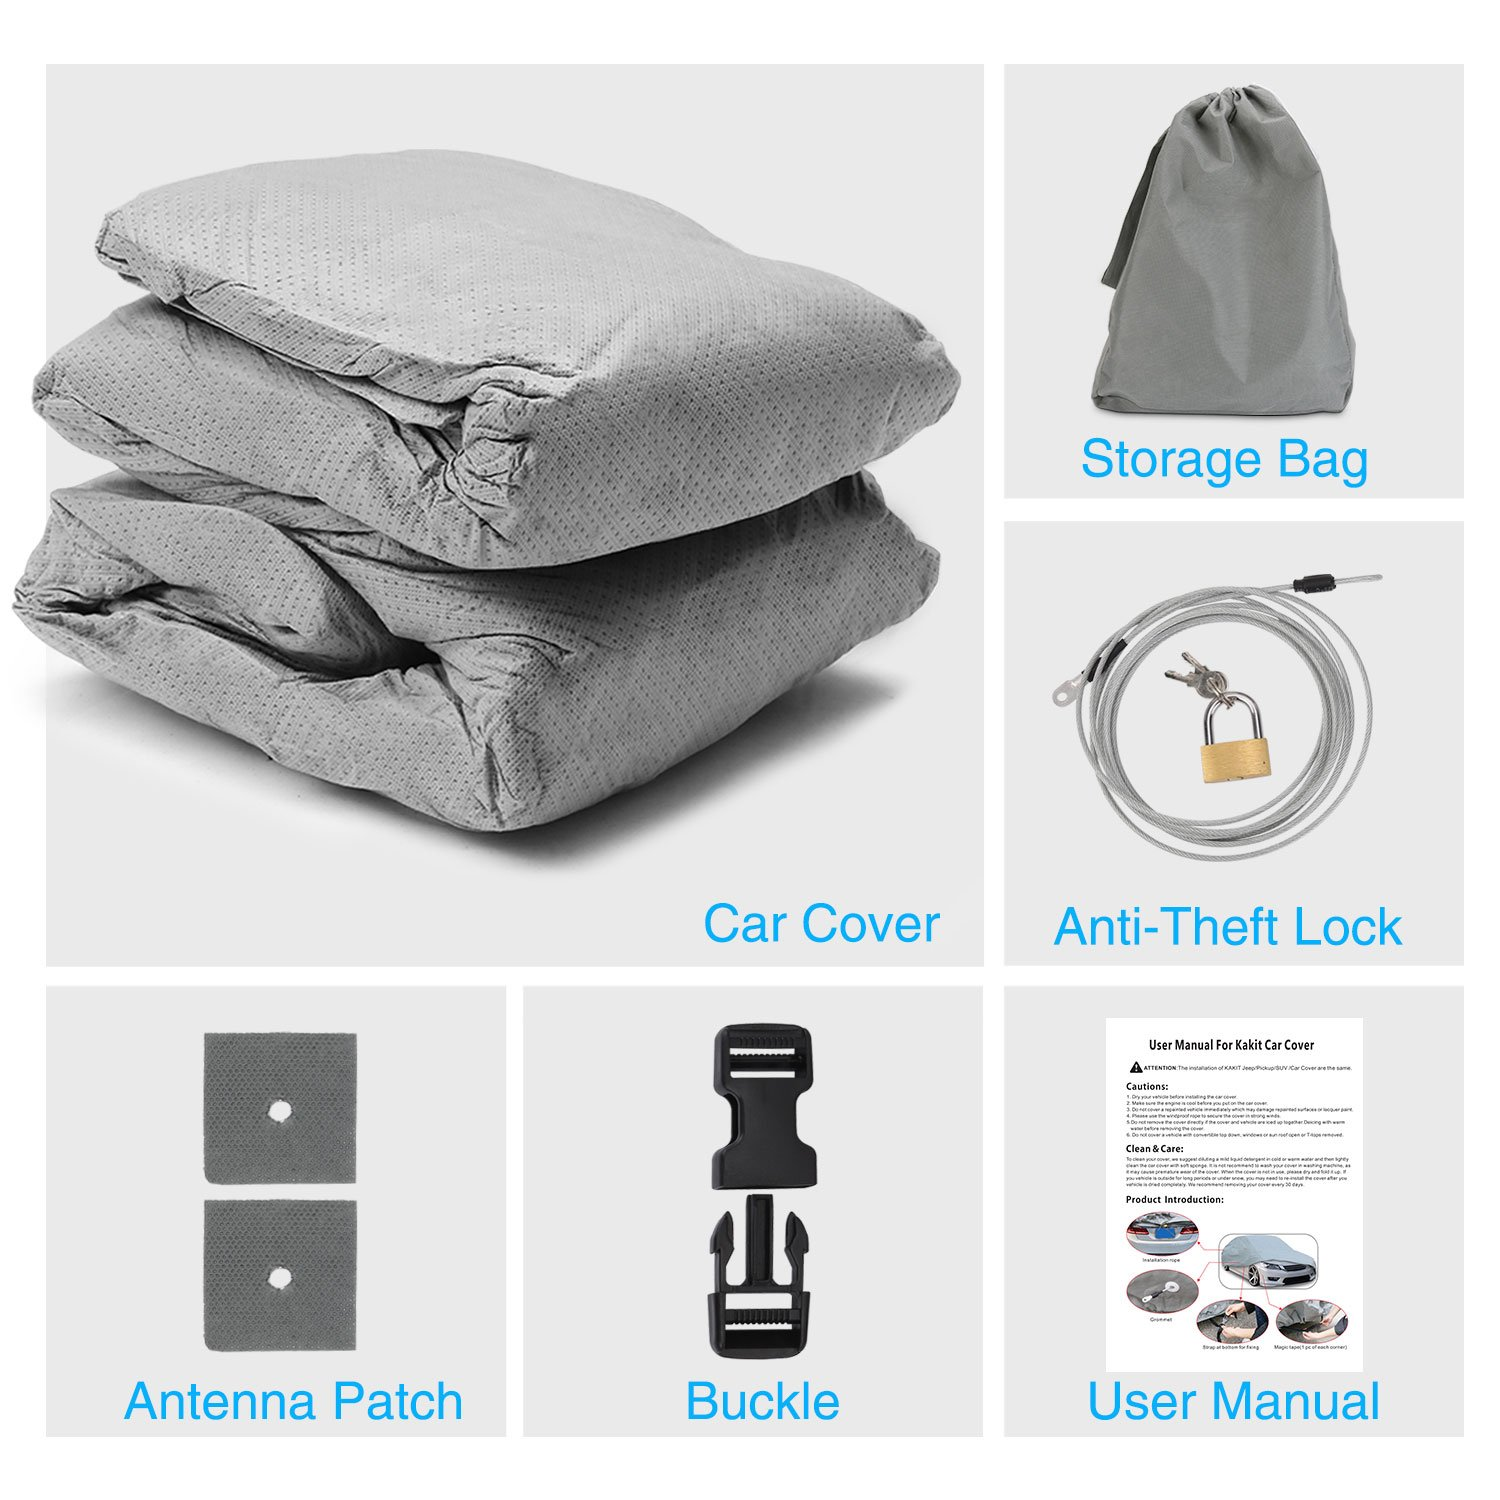 KAKIT 2 Layers Car Cover Windproof Dustproof Water Resistant Summer Outdoor UV Protection SUV Cover for car Free Windproof Ribbon /& Anti-Theft Lock Fits 170